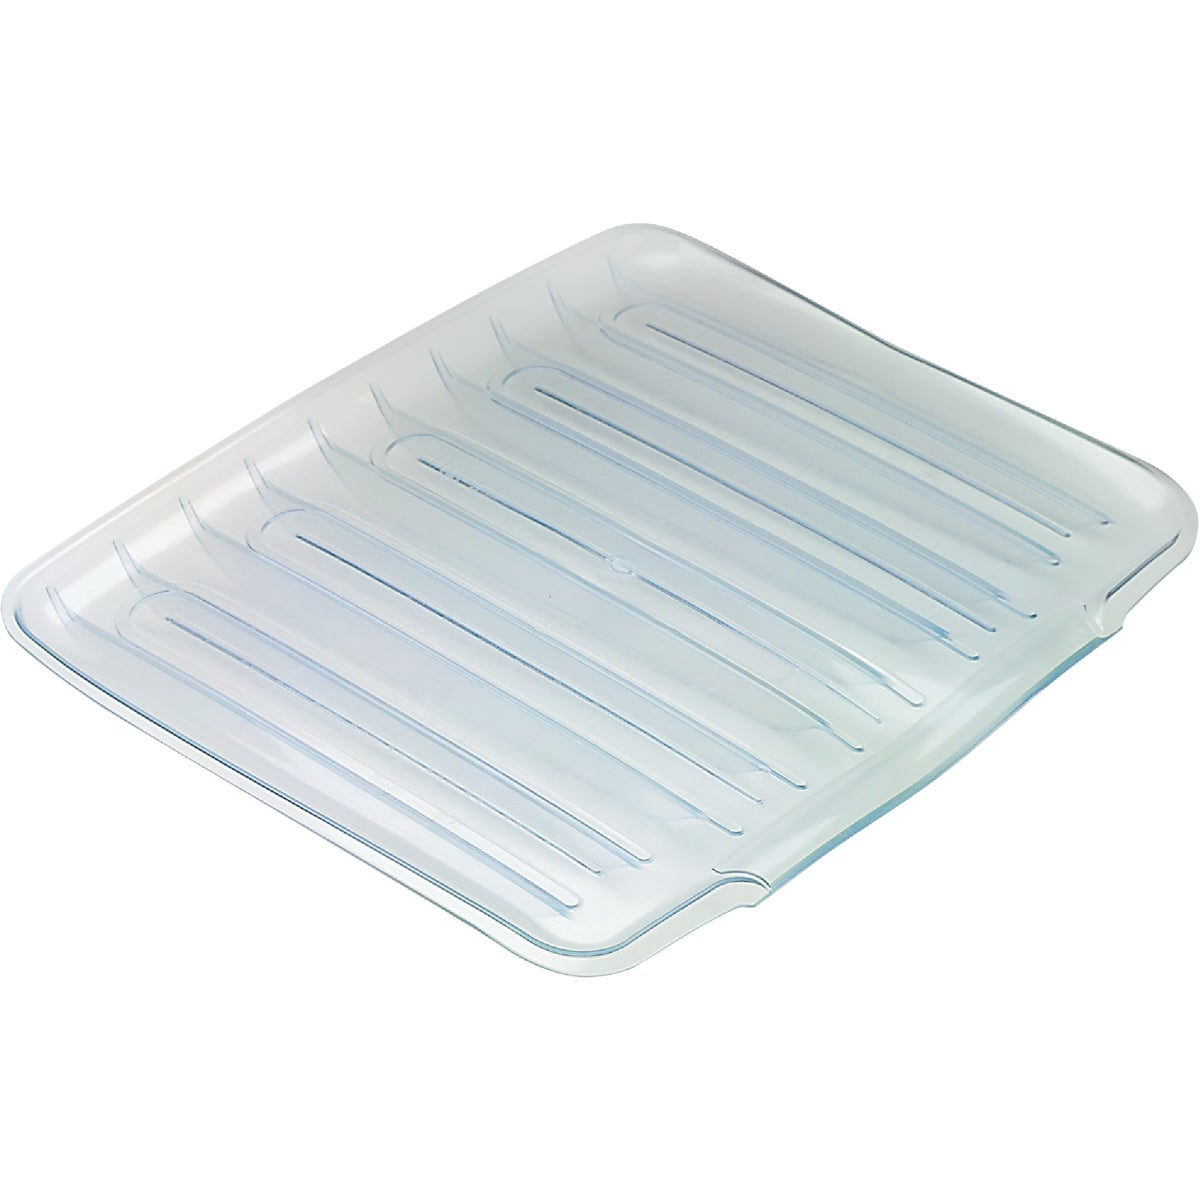 SMALL CLEAR DRAINER TRAY